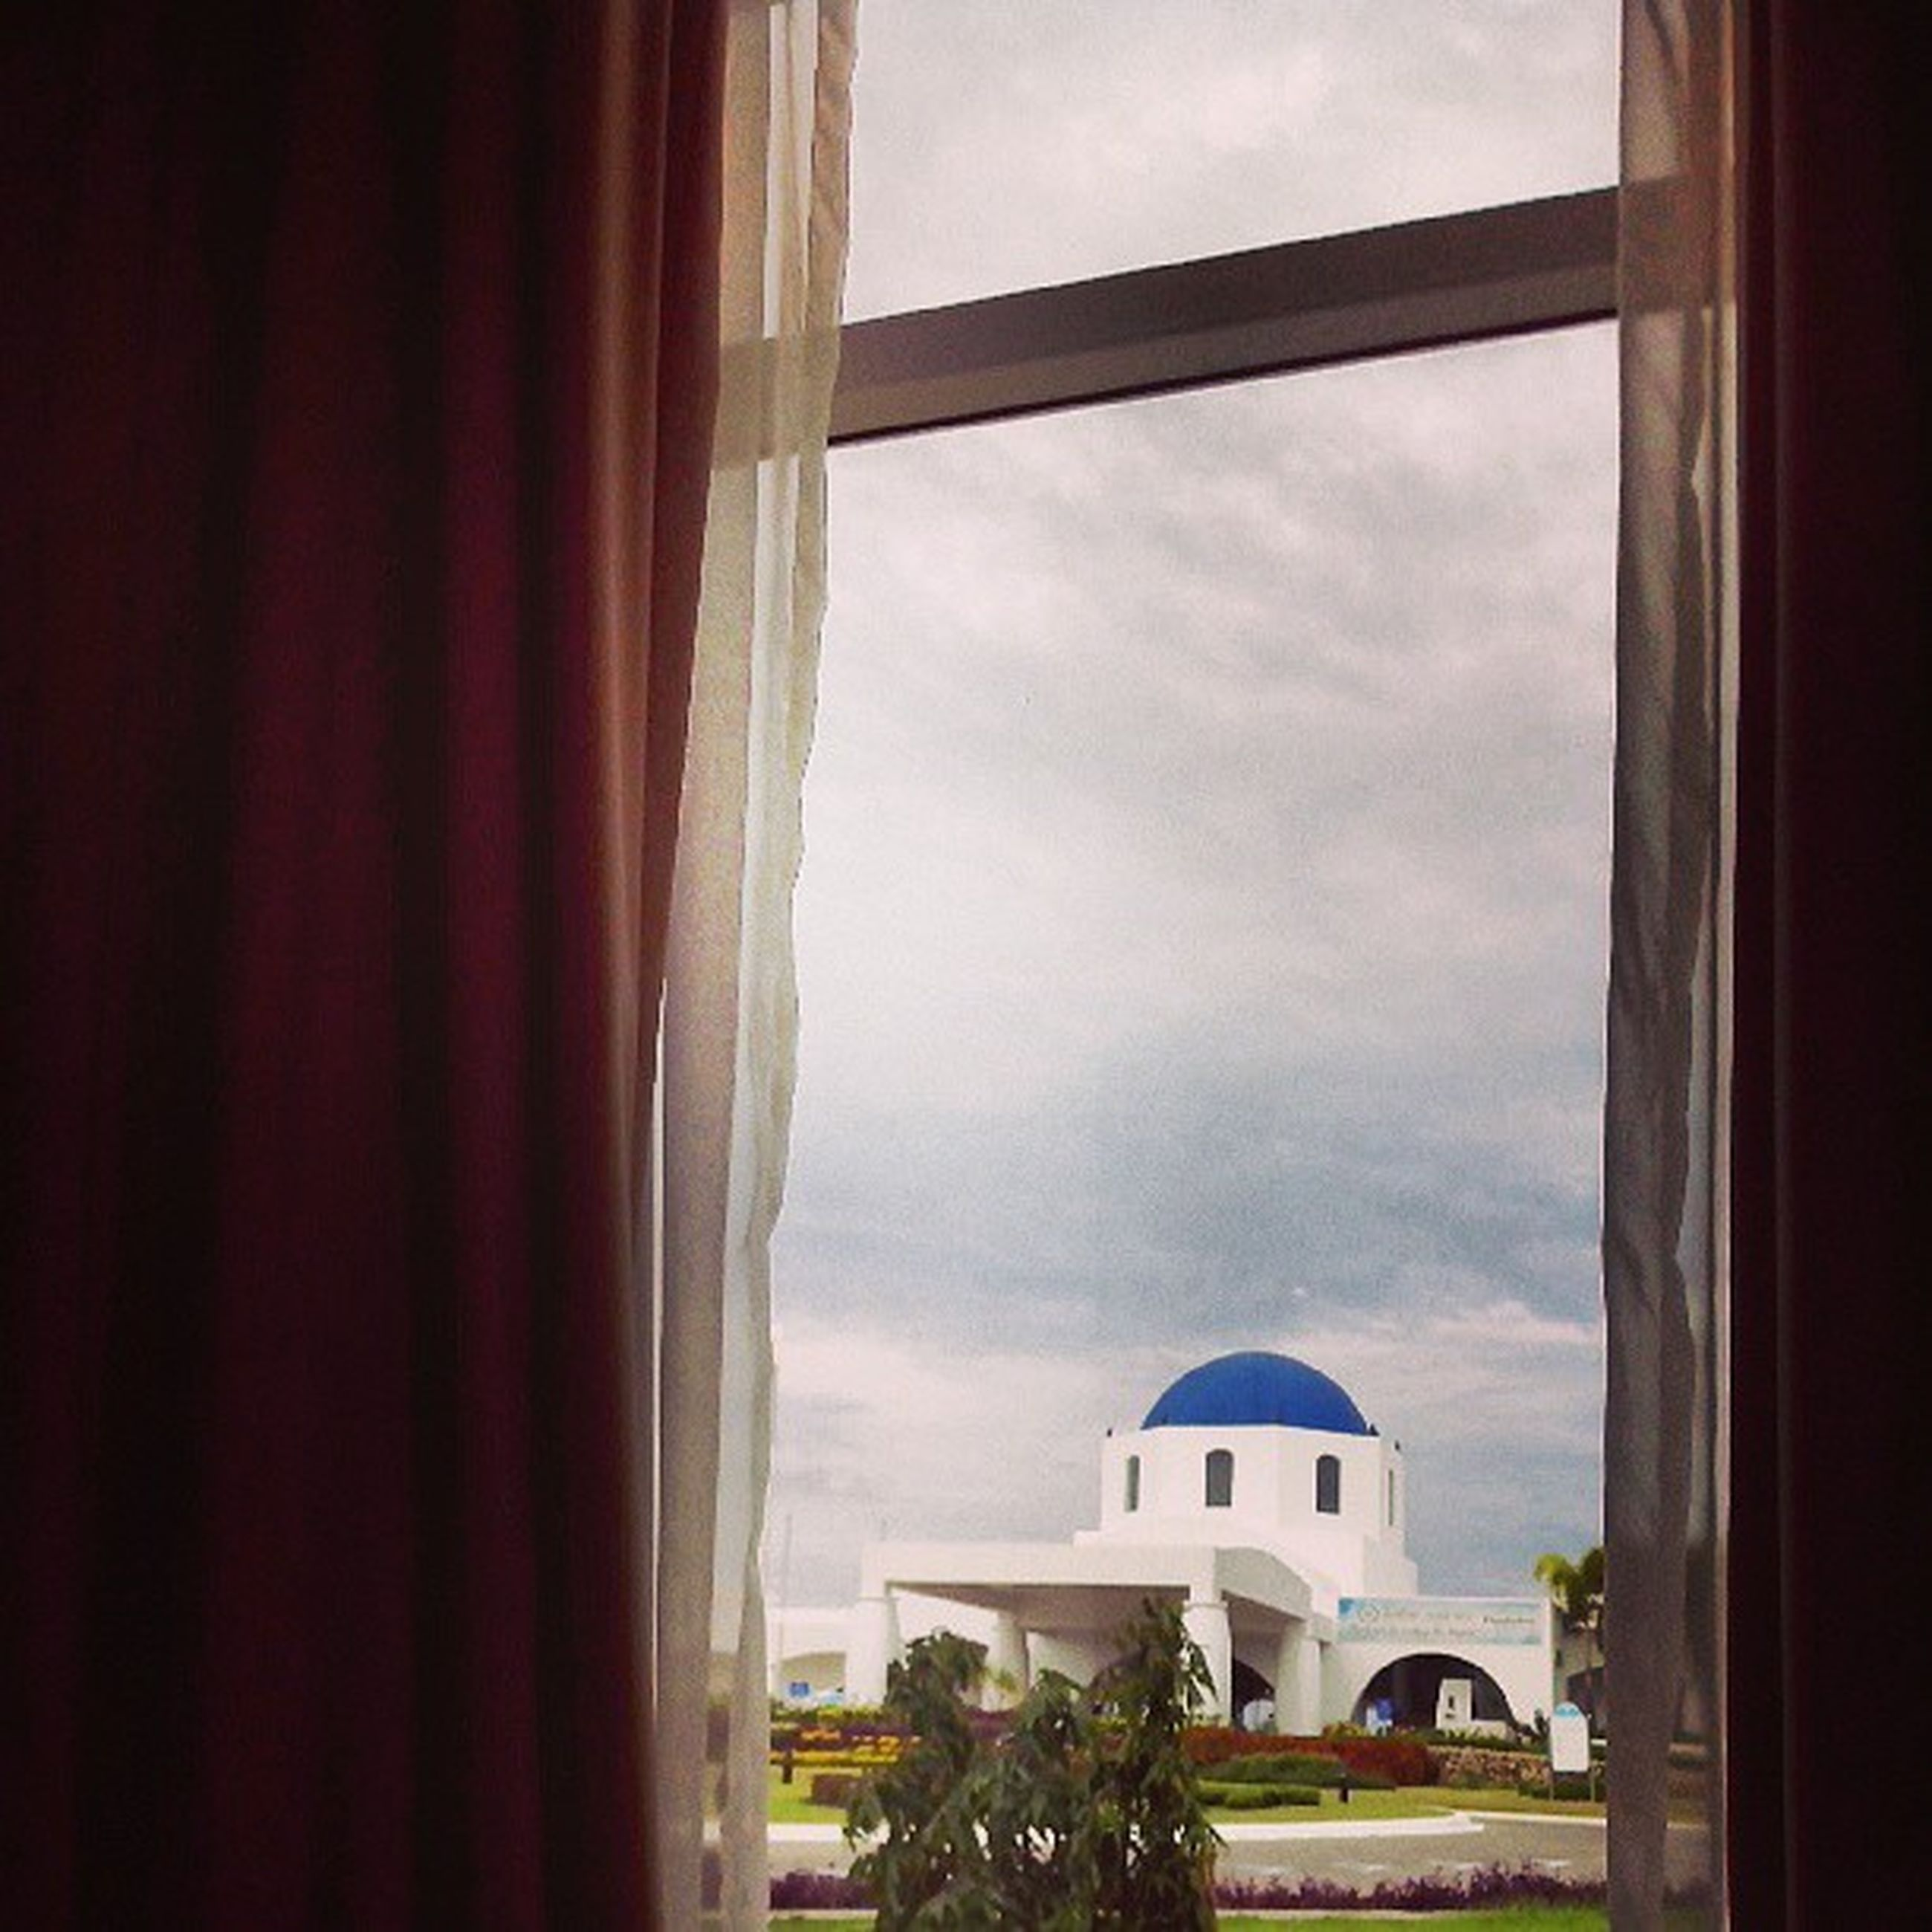 architecture, window, built structure, building exterior, sky, house, indoors, cloud - sky, glass - material, cloud, transparent, residential structure, day, low angle view, church, building, cloudy, no people, tree, residential building